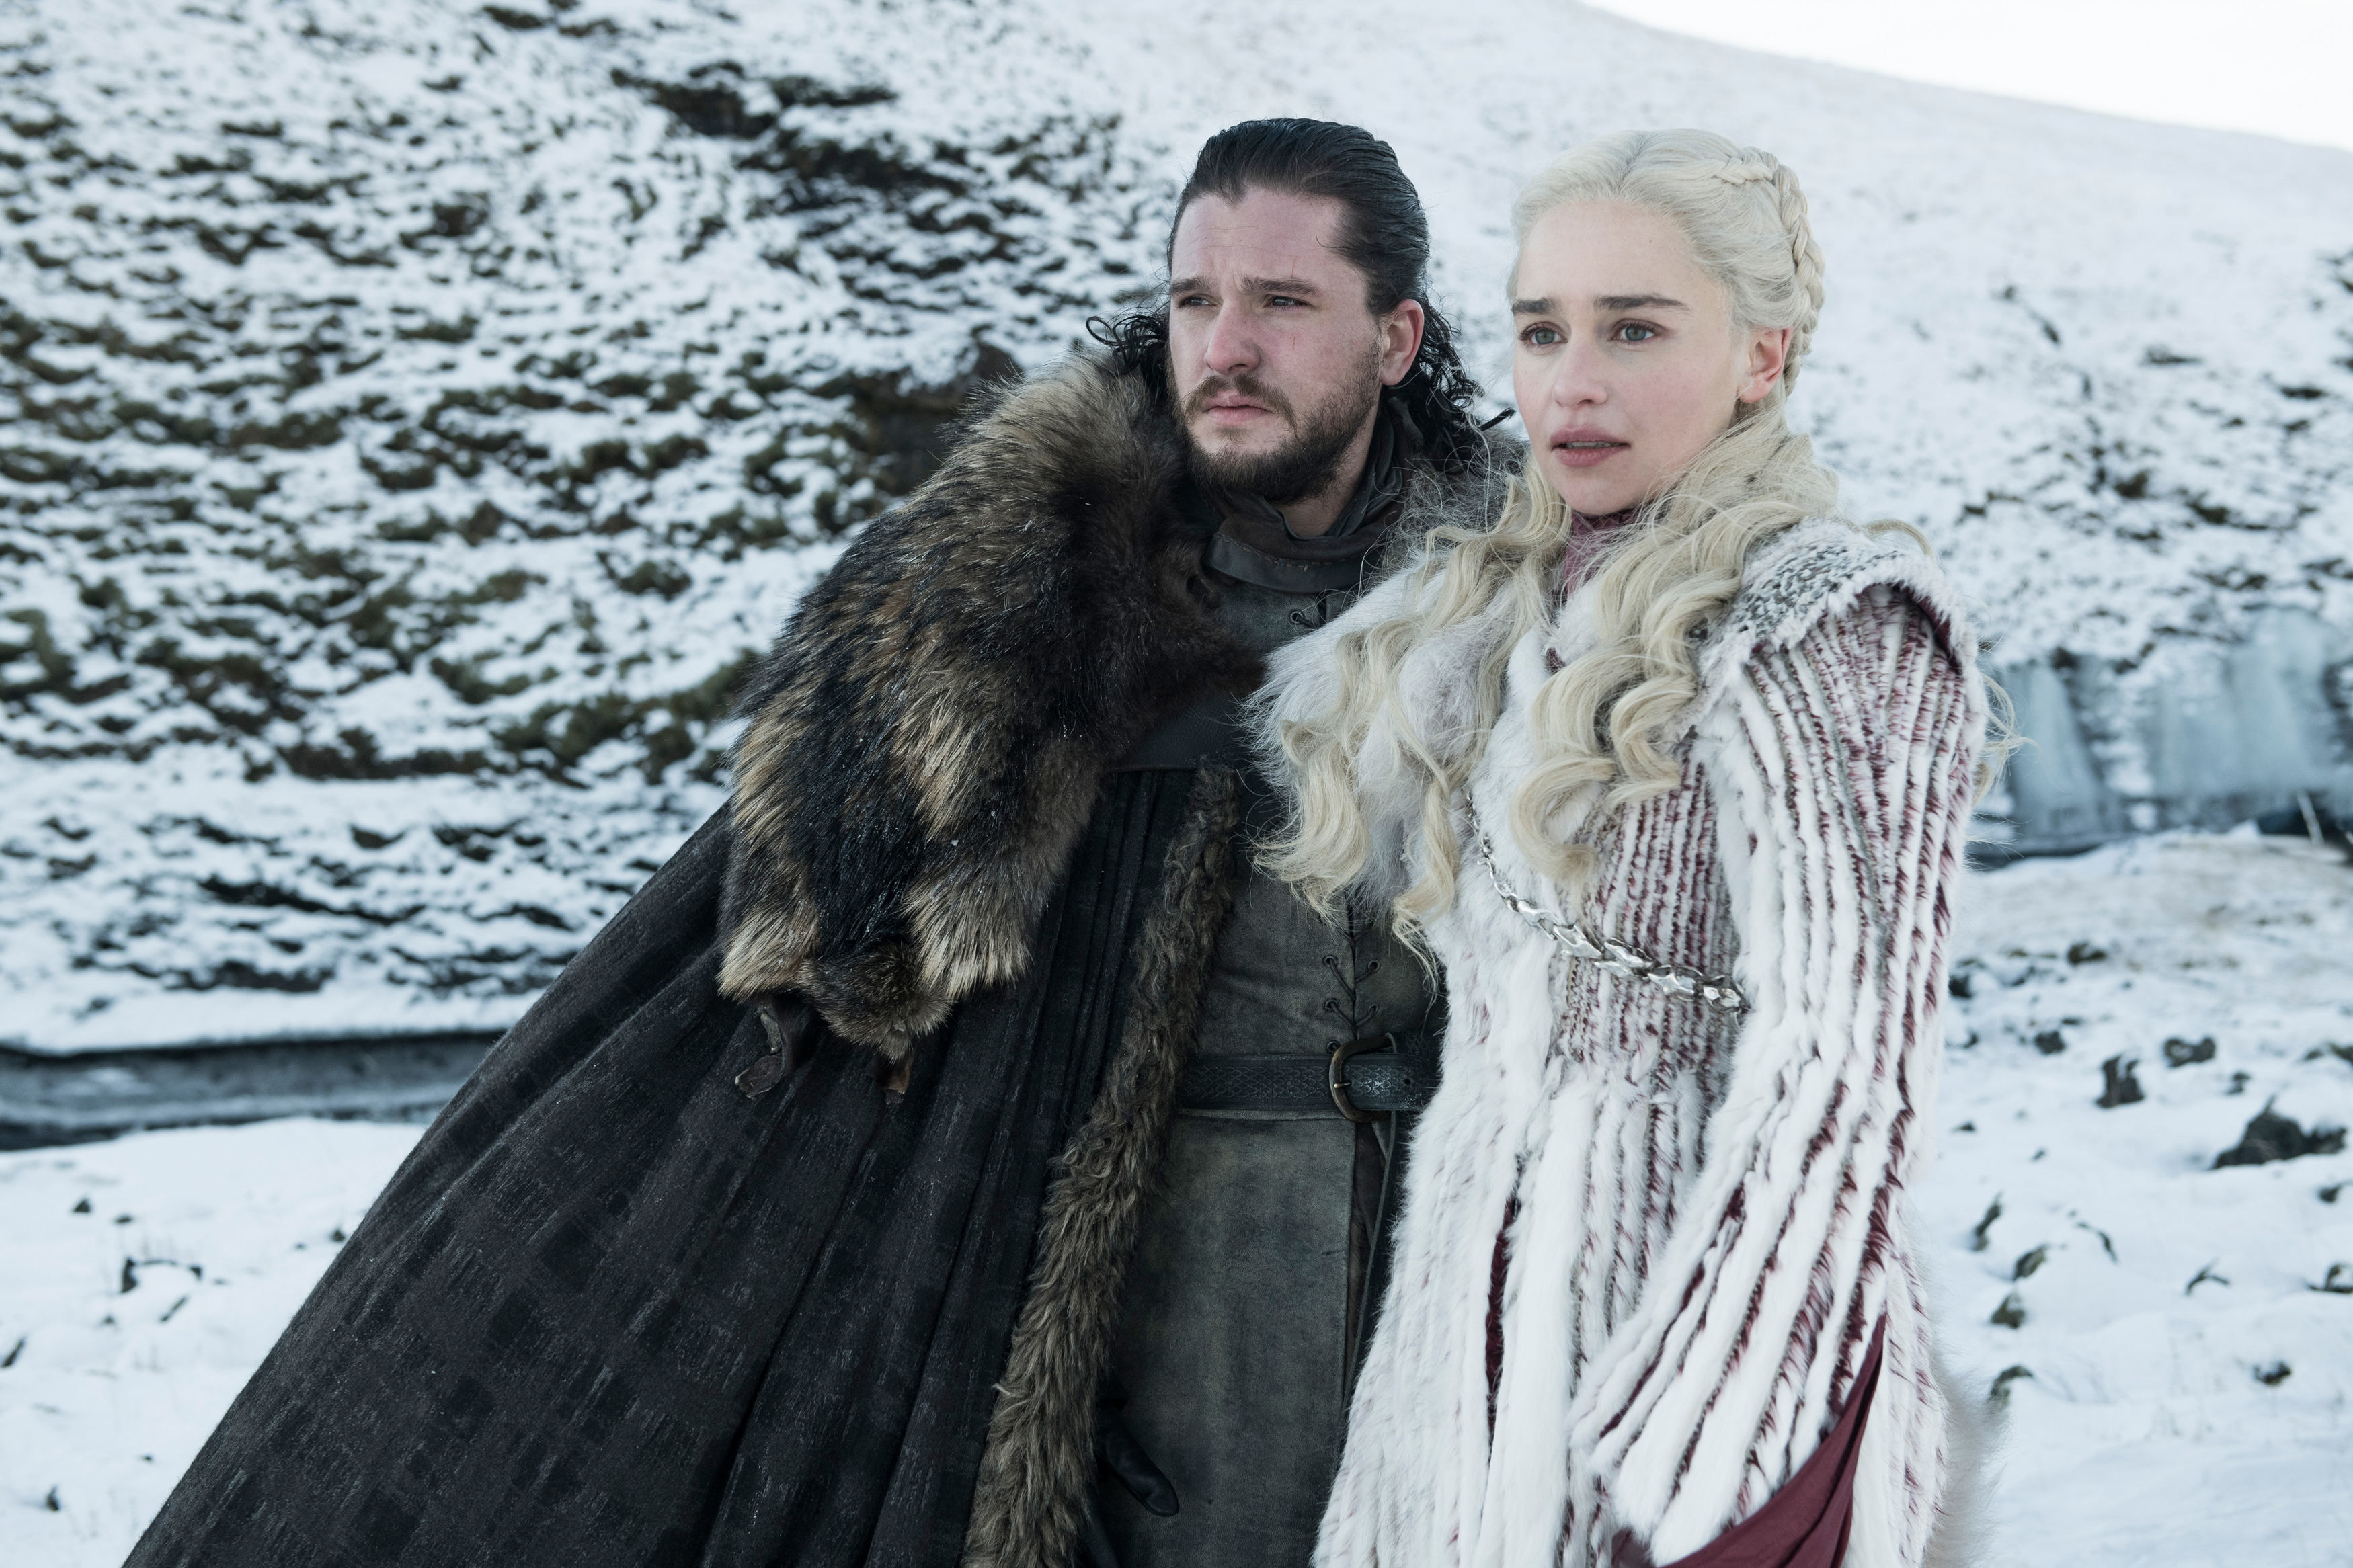 What fate will meet Jon Snow and Daenerys Targaryen?